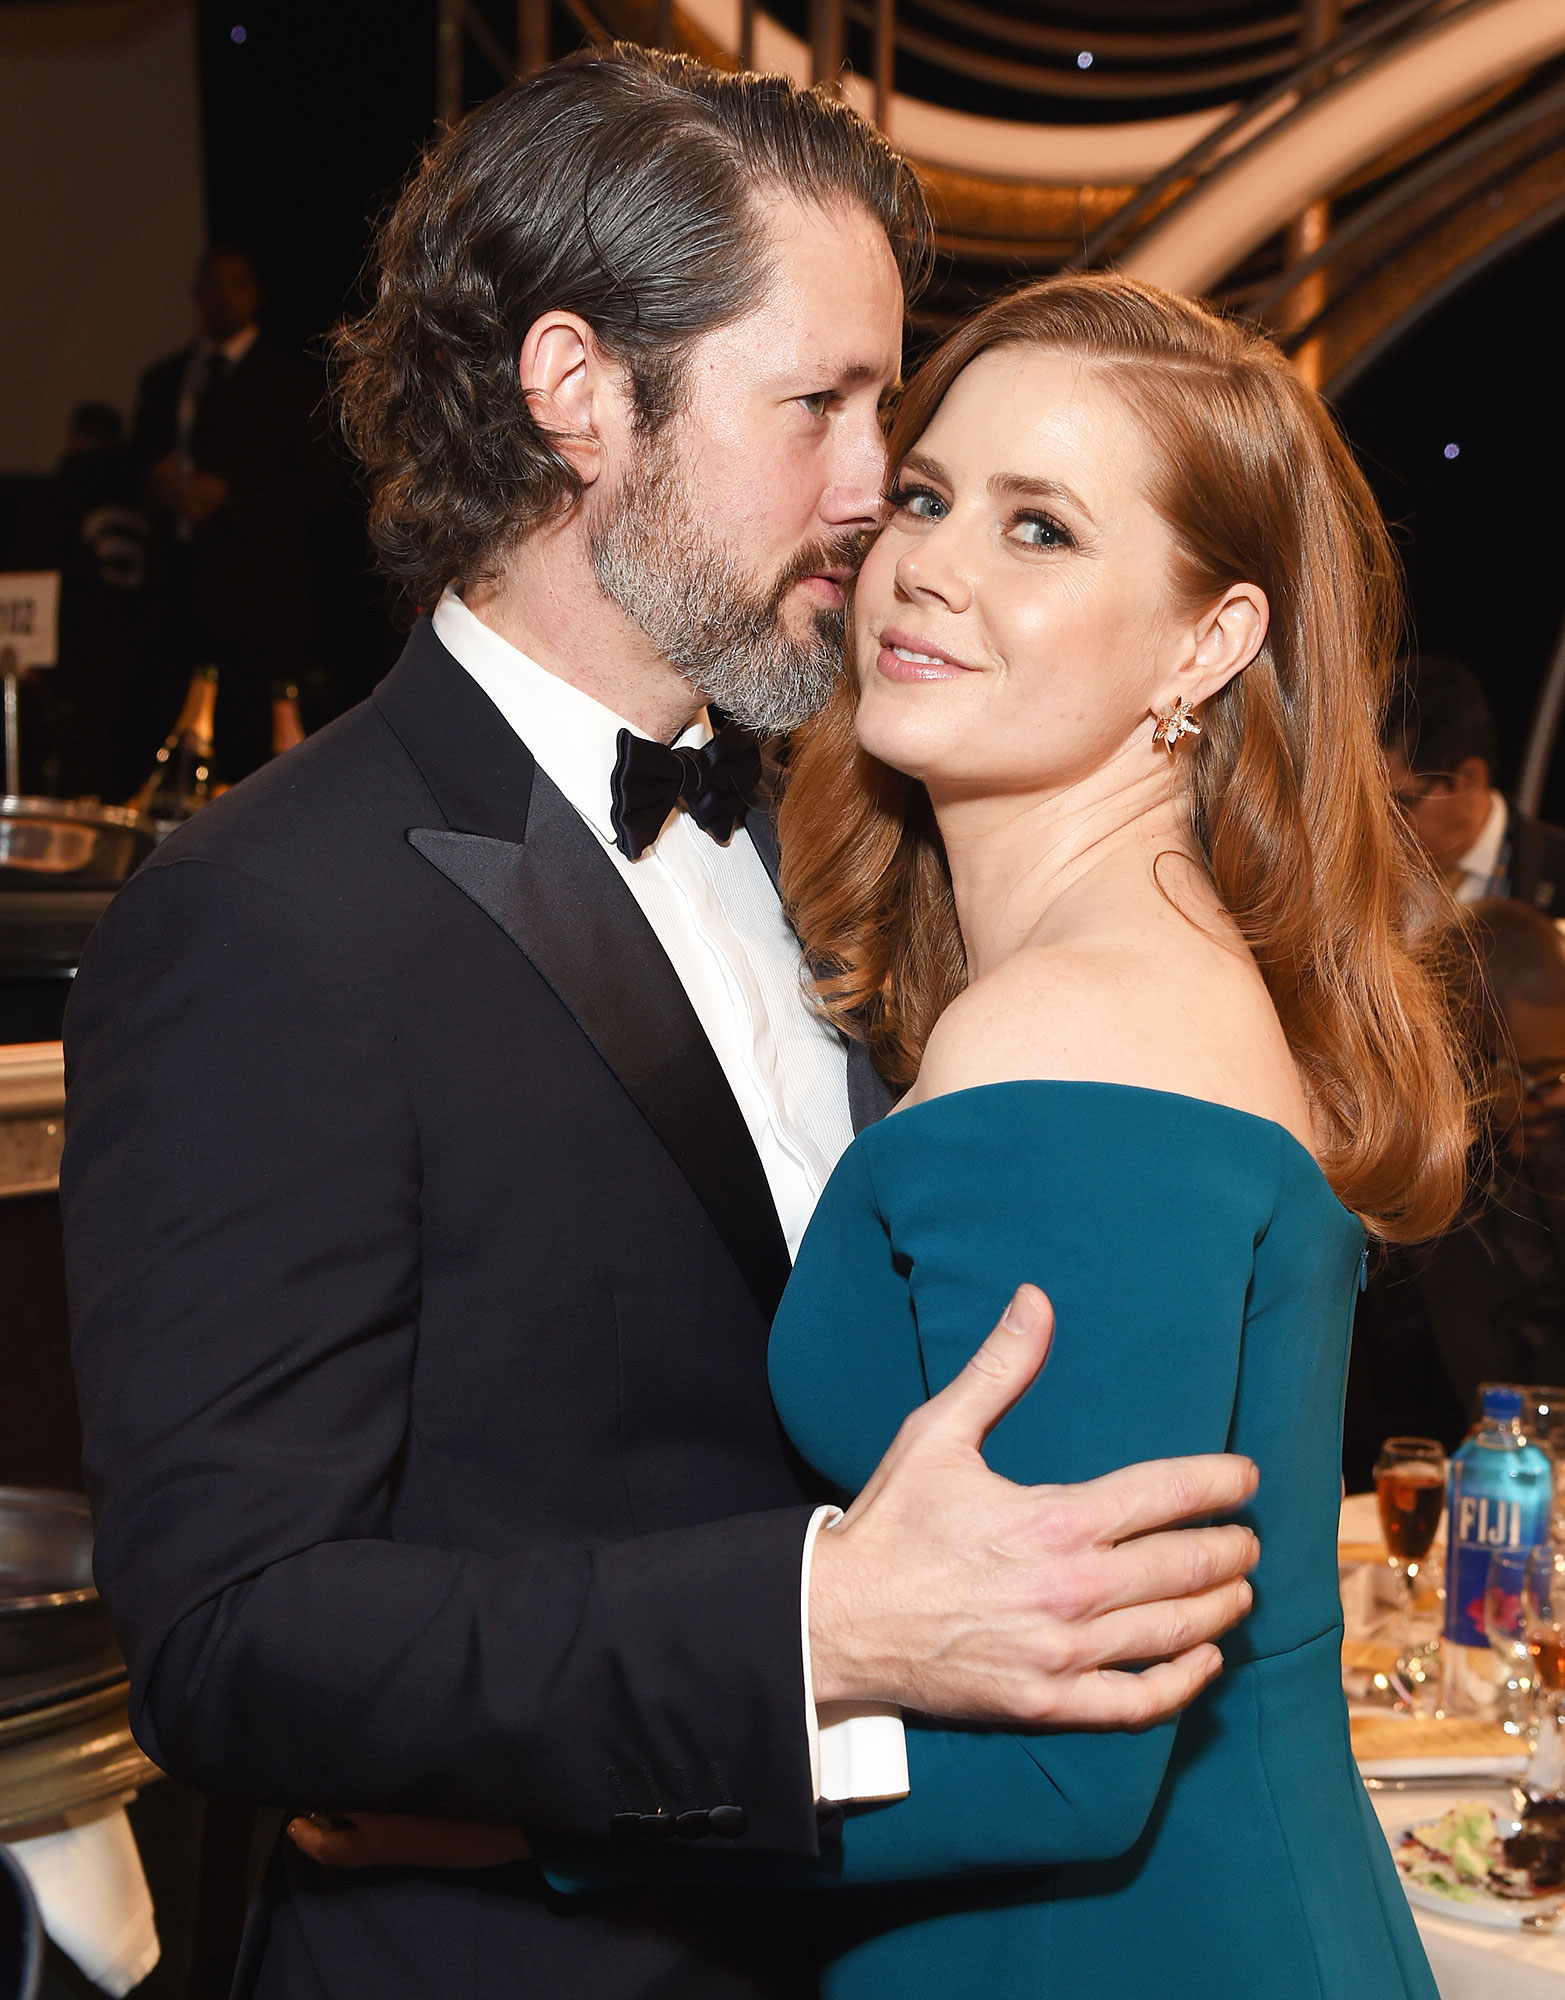 Inside Golden Globes 2019 Darren Le Gallo Amy Adams - Amy Adams ' husband, Darren Le Gallo , held her close during the reception.